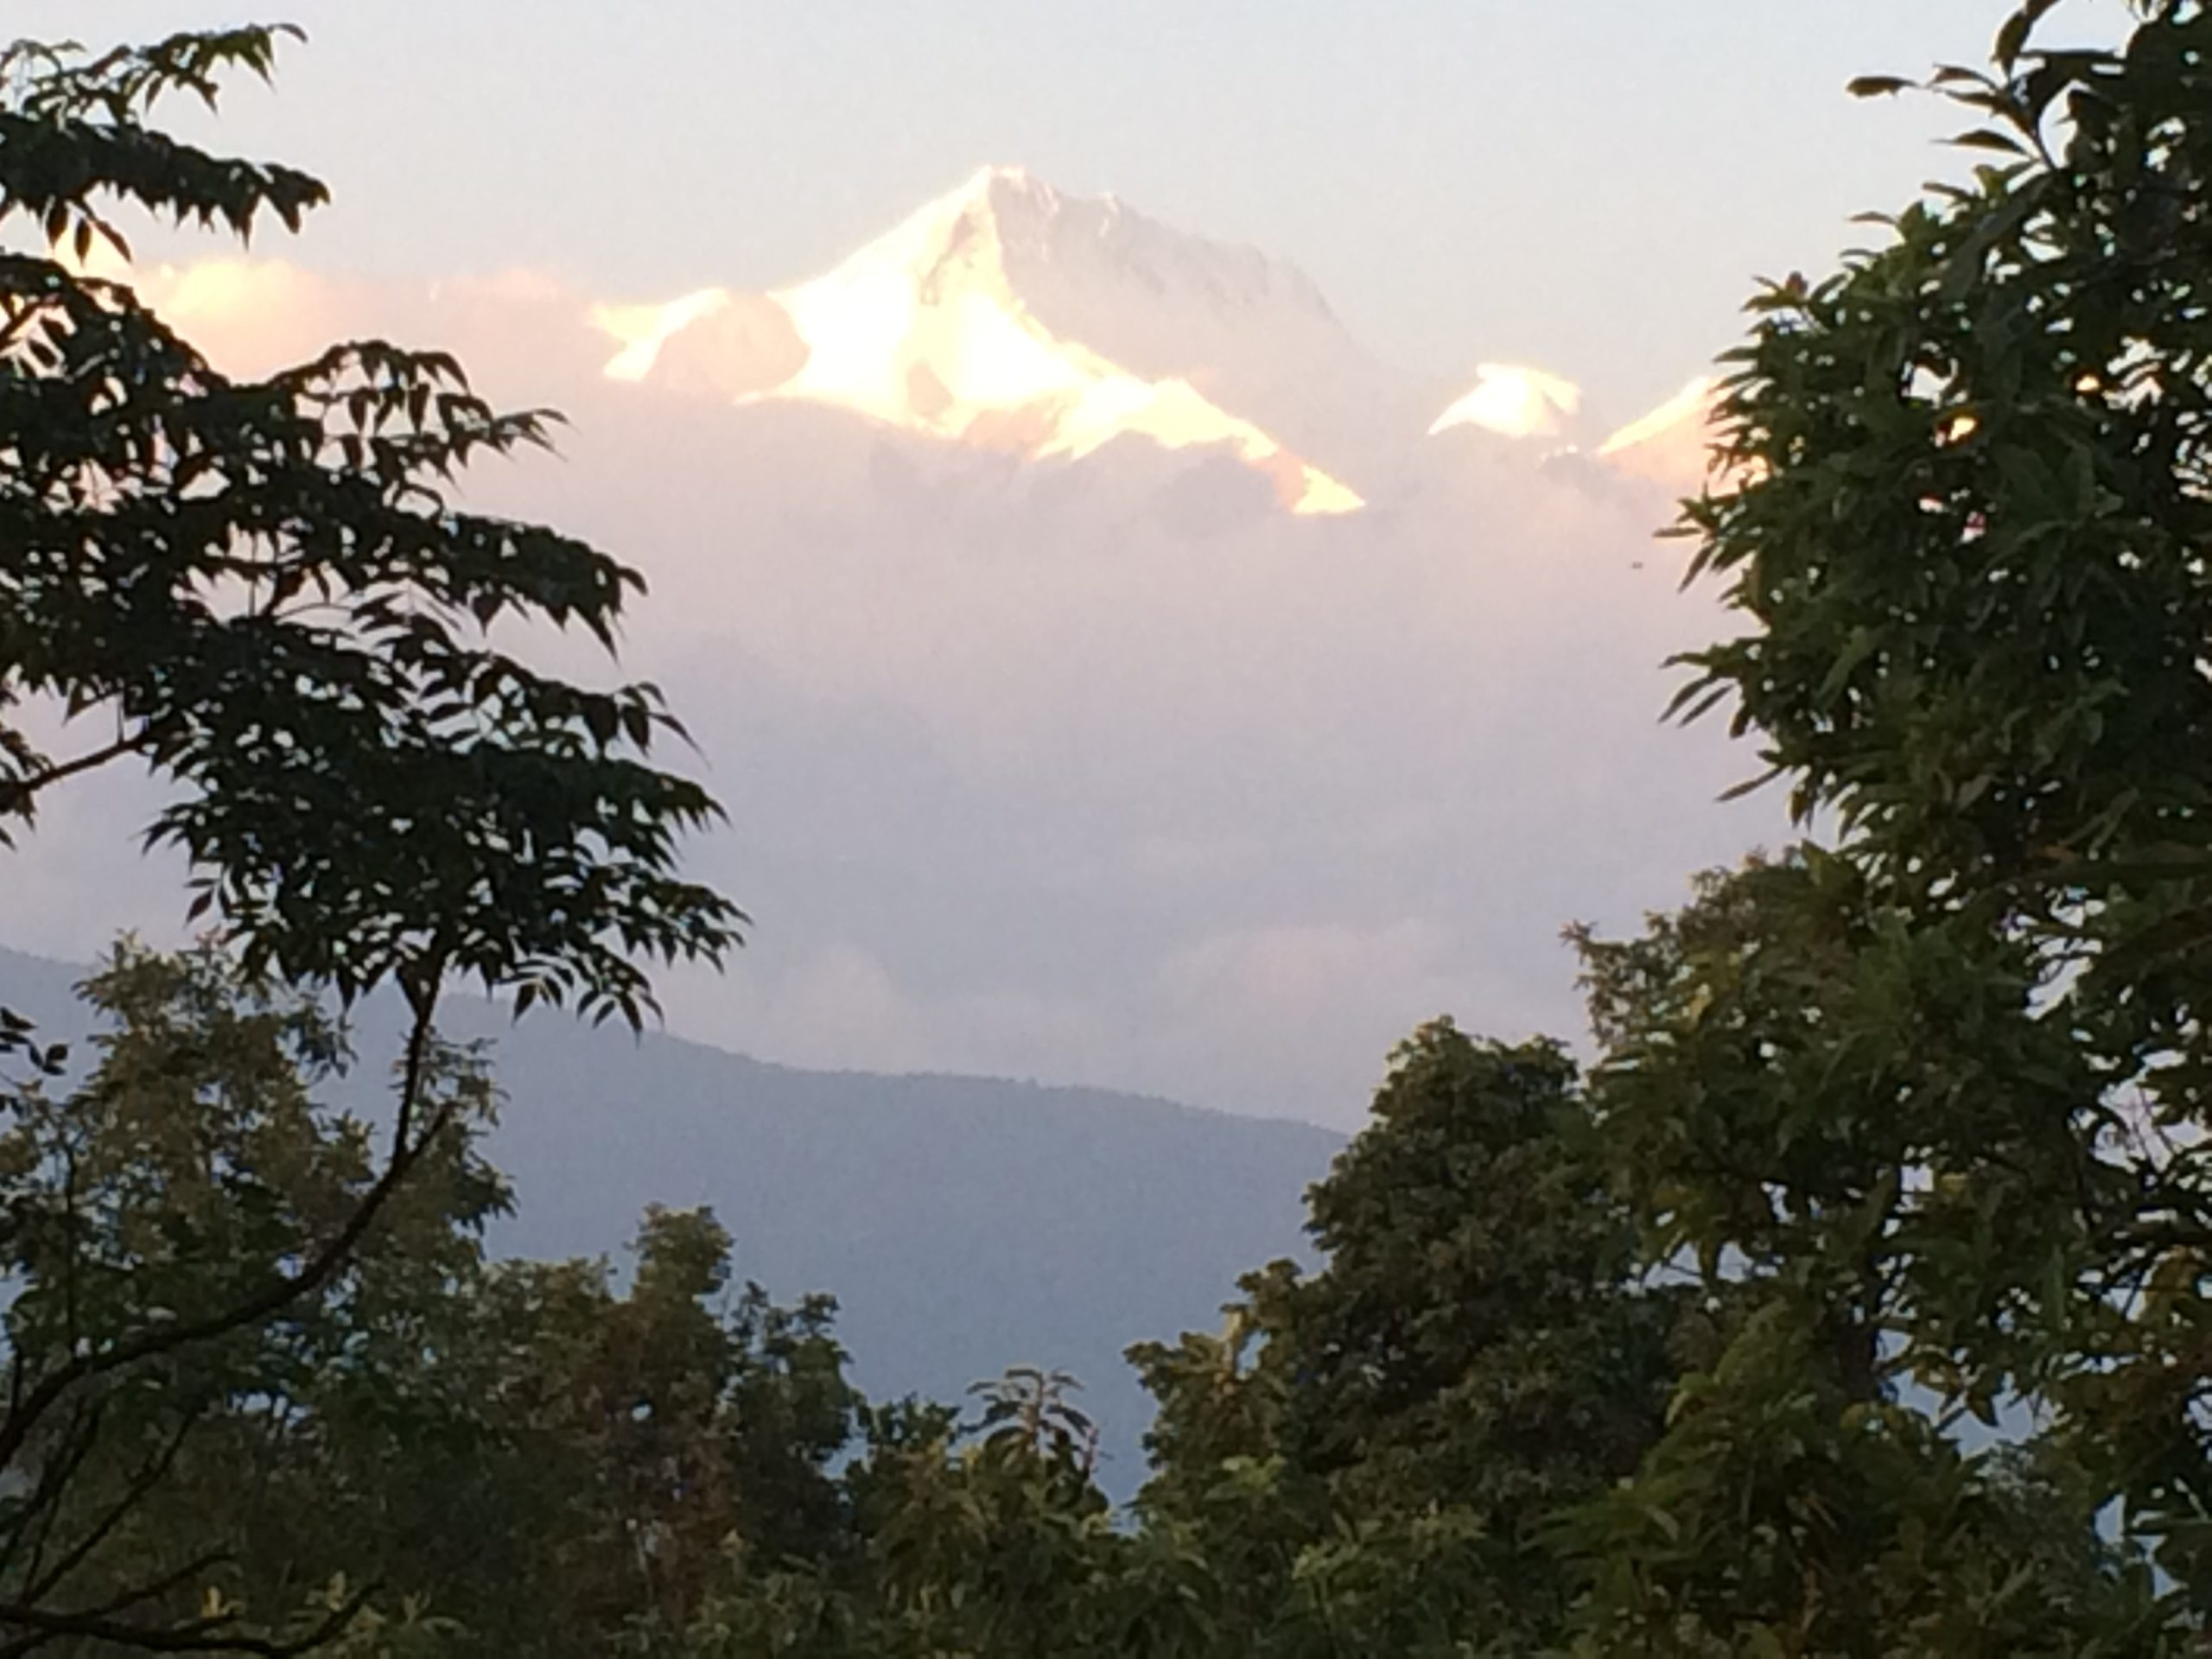 Fishtail peak at sunrise, seen between trees on Nepal holiday